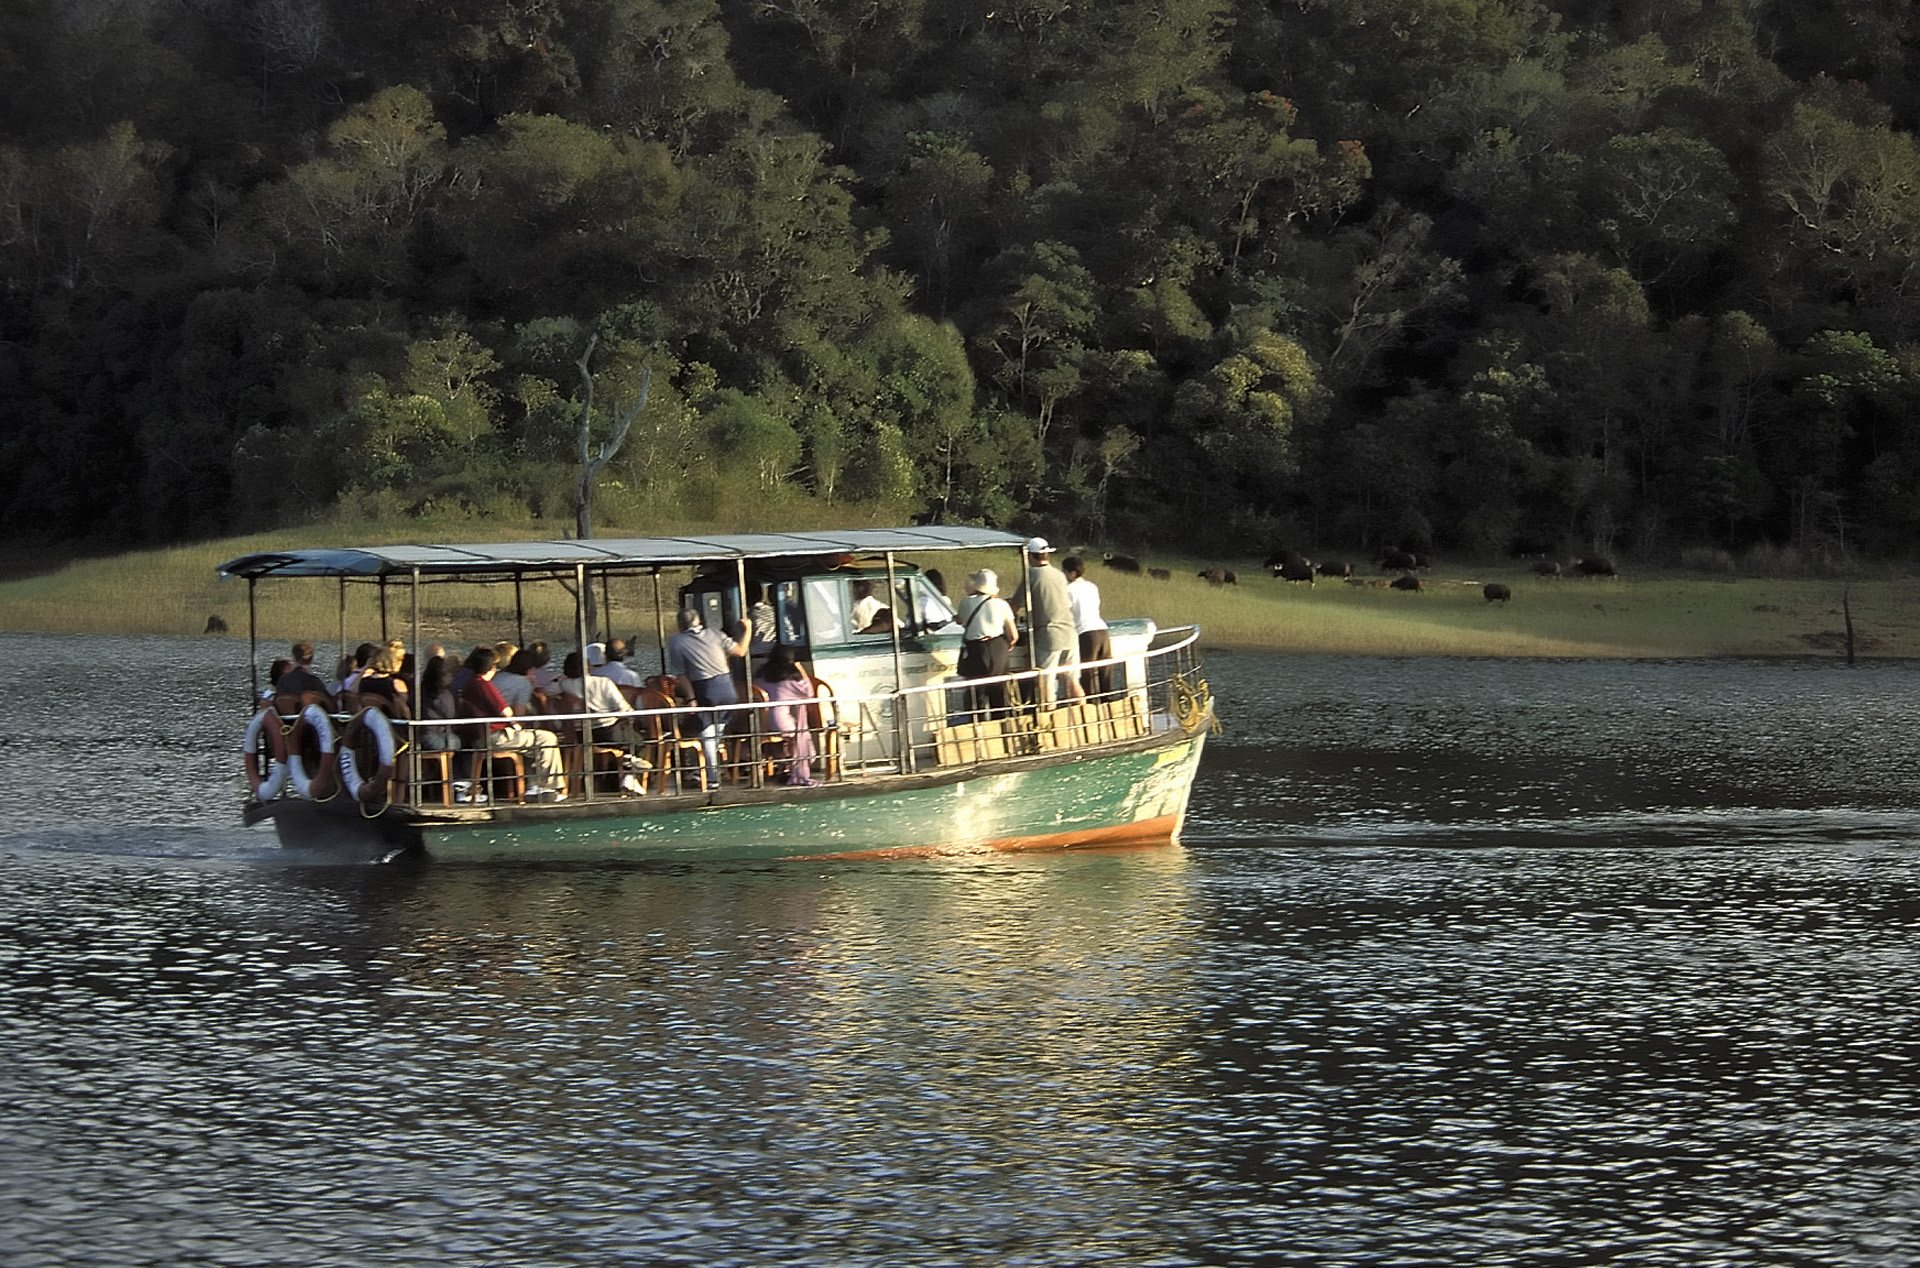 Sightseeing boat on Periyar Lake, Periyar Wildlife Sanctuary, Kerala, India